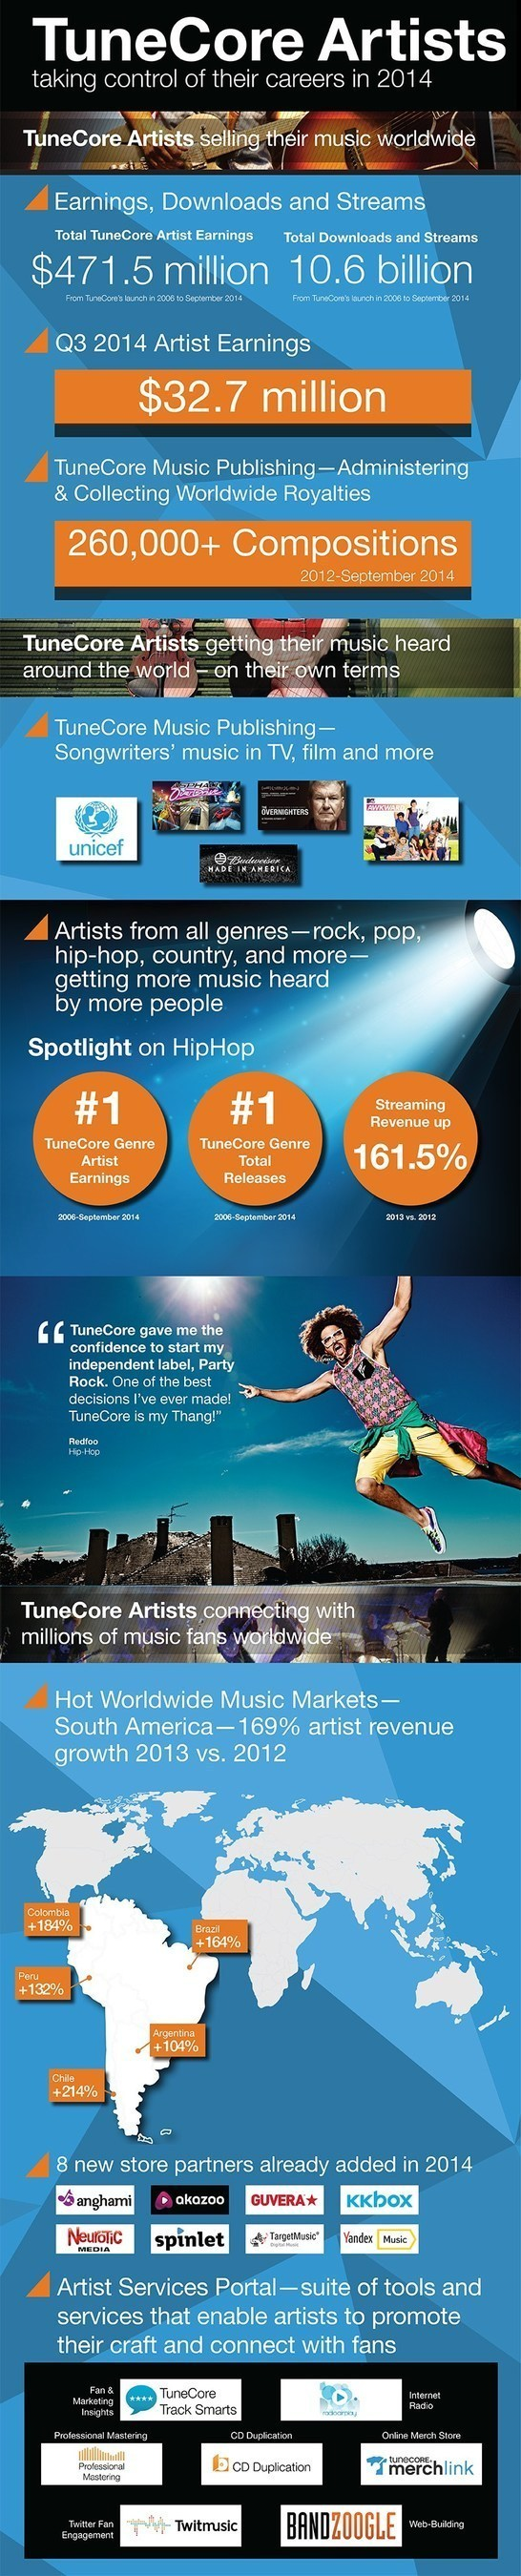 TuneCore Artists earn $32.7 million in Q3 2014, $471.5 million since 2006 based on 10.6 billion combined streams and downloads. Publishing Administration catalog tops 250K compositions, attracts high-profile sync deals.